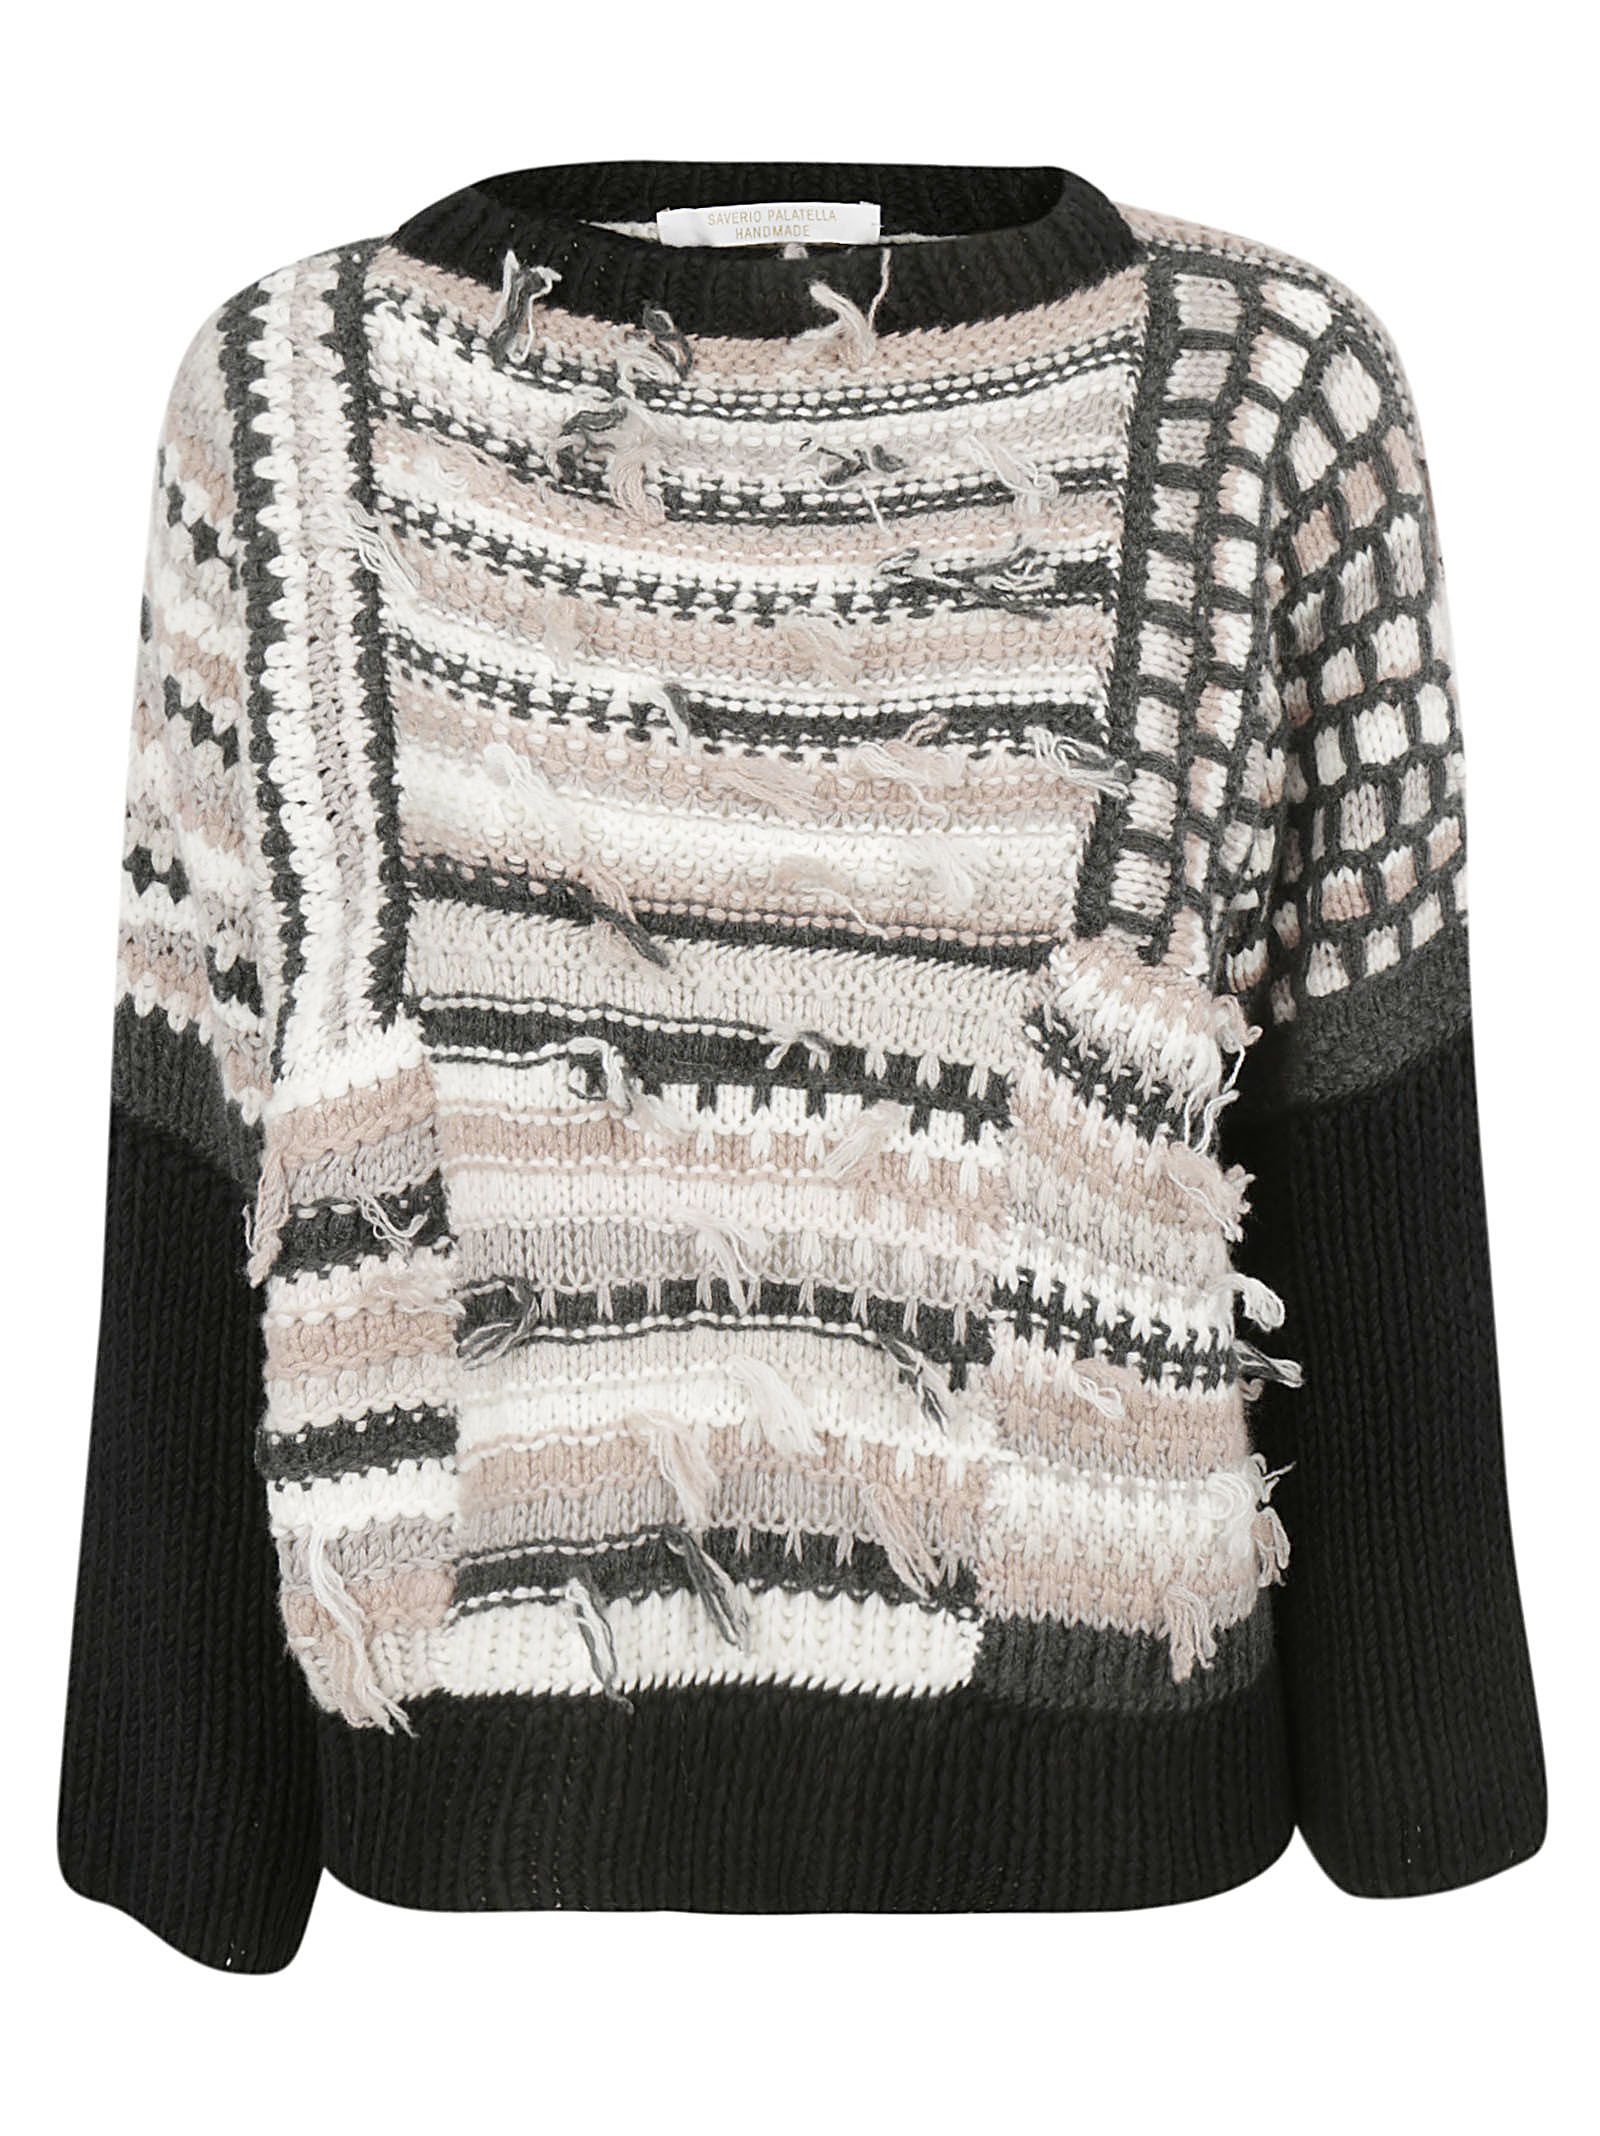 SAVERIO PALATELLA Knitted Sweater in Fantasy